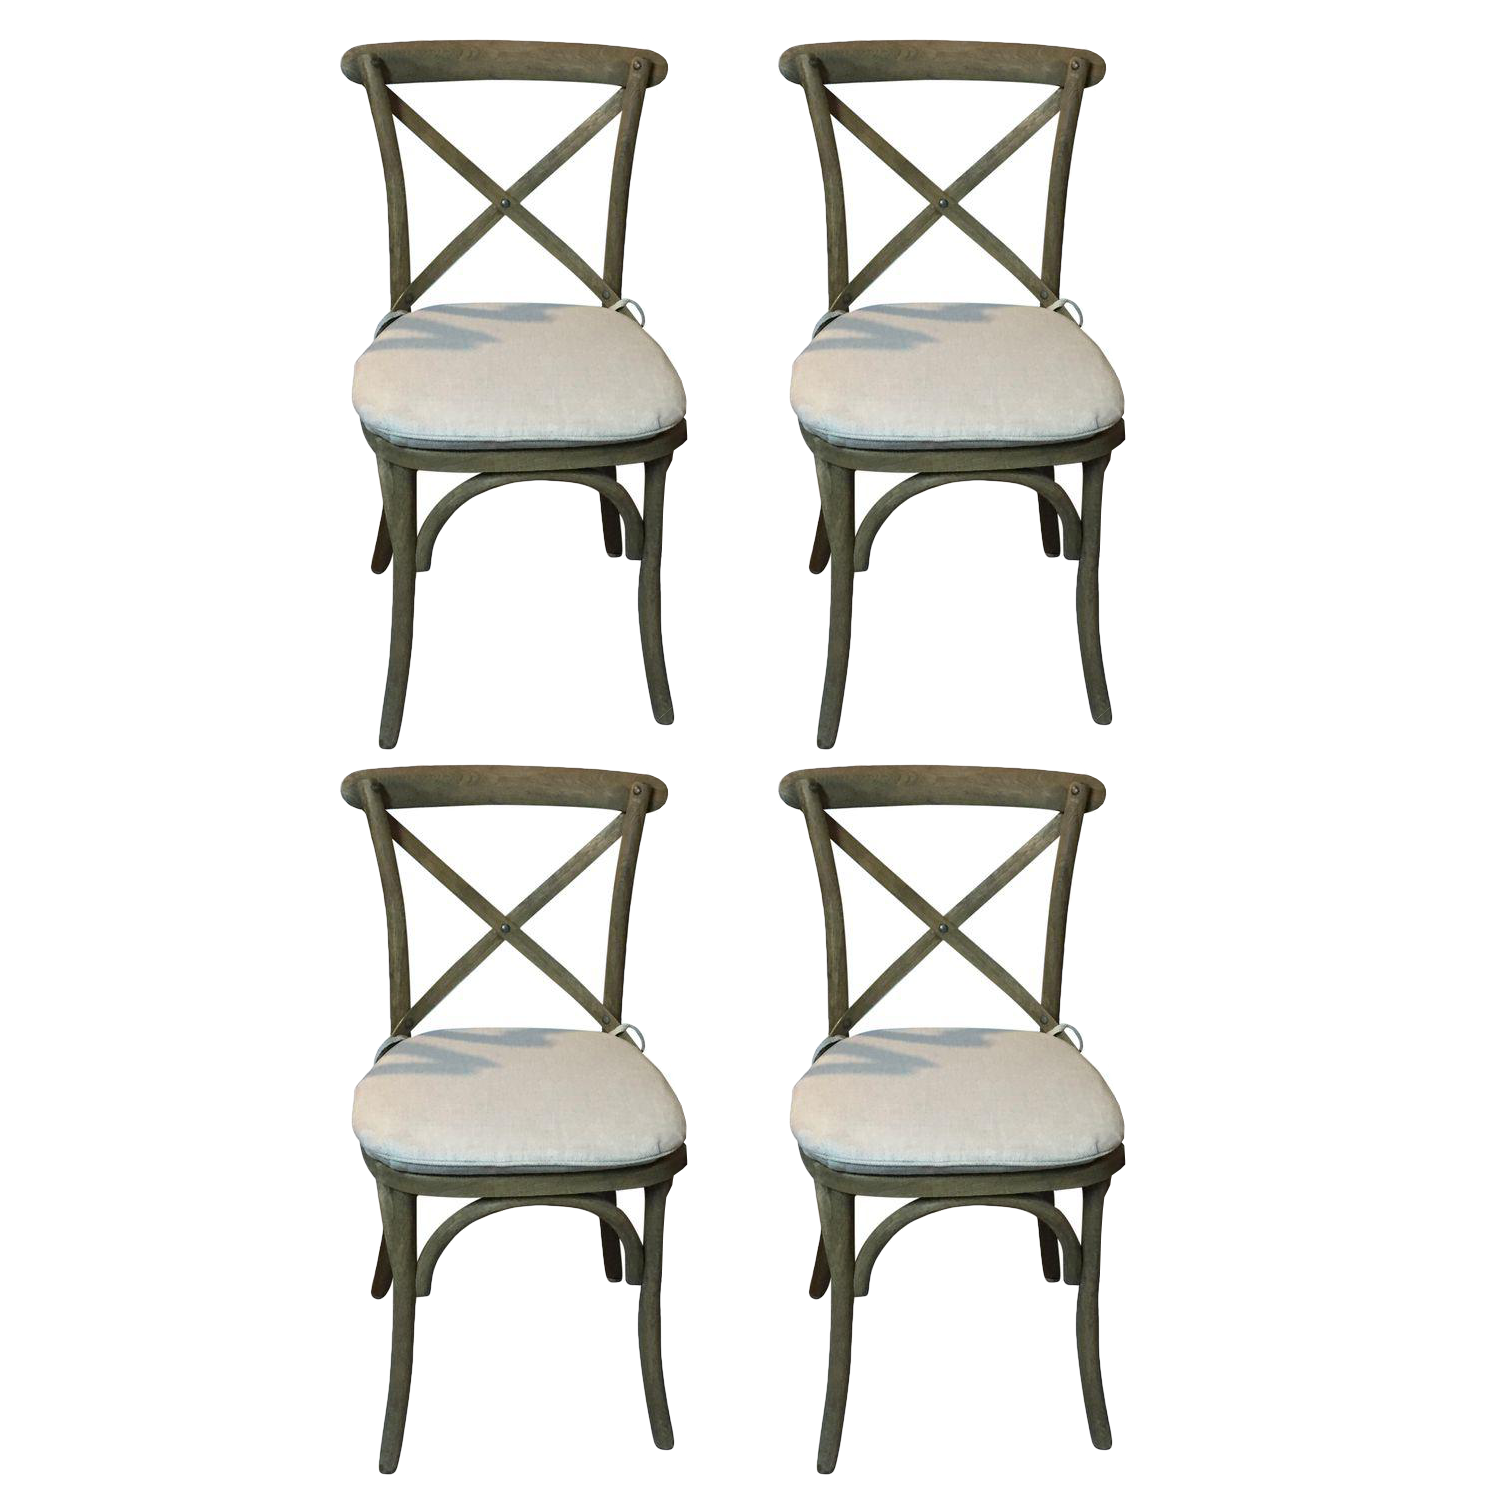 Restoration Hardware Caned Bistro Chairs Set of 4